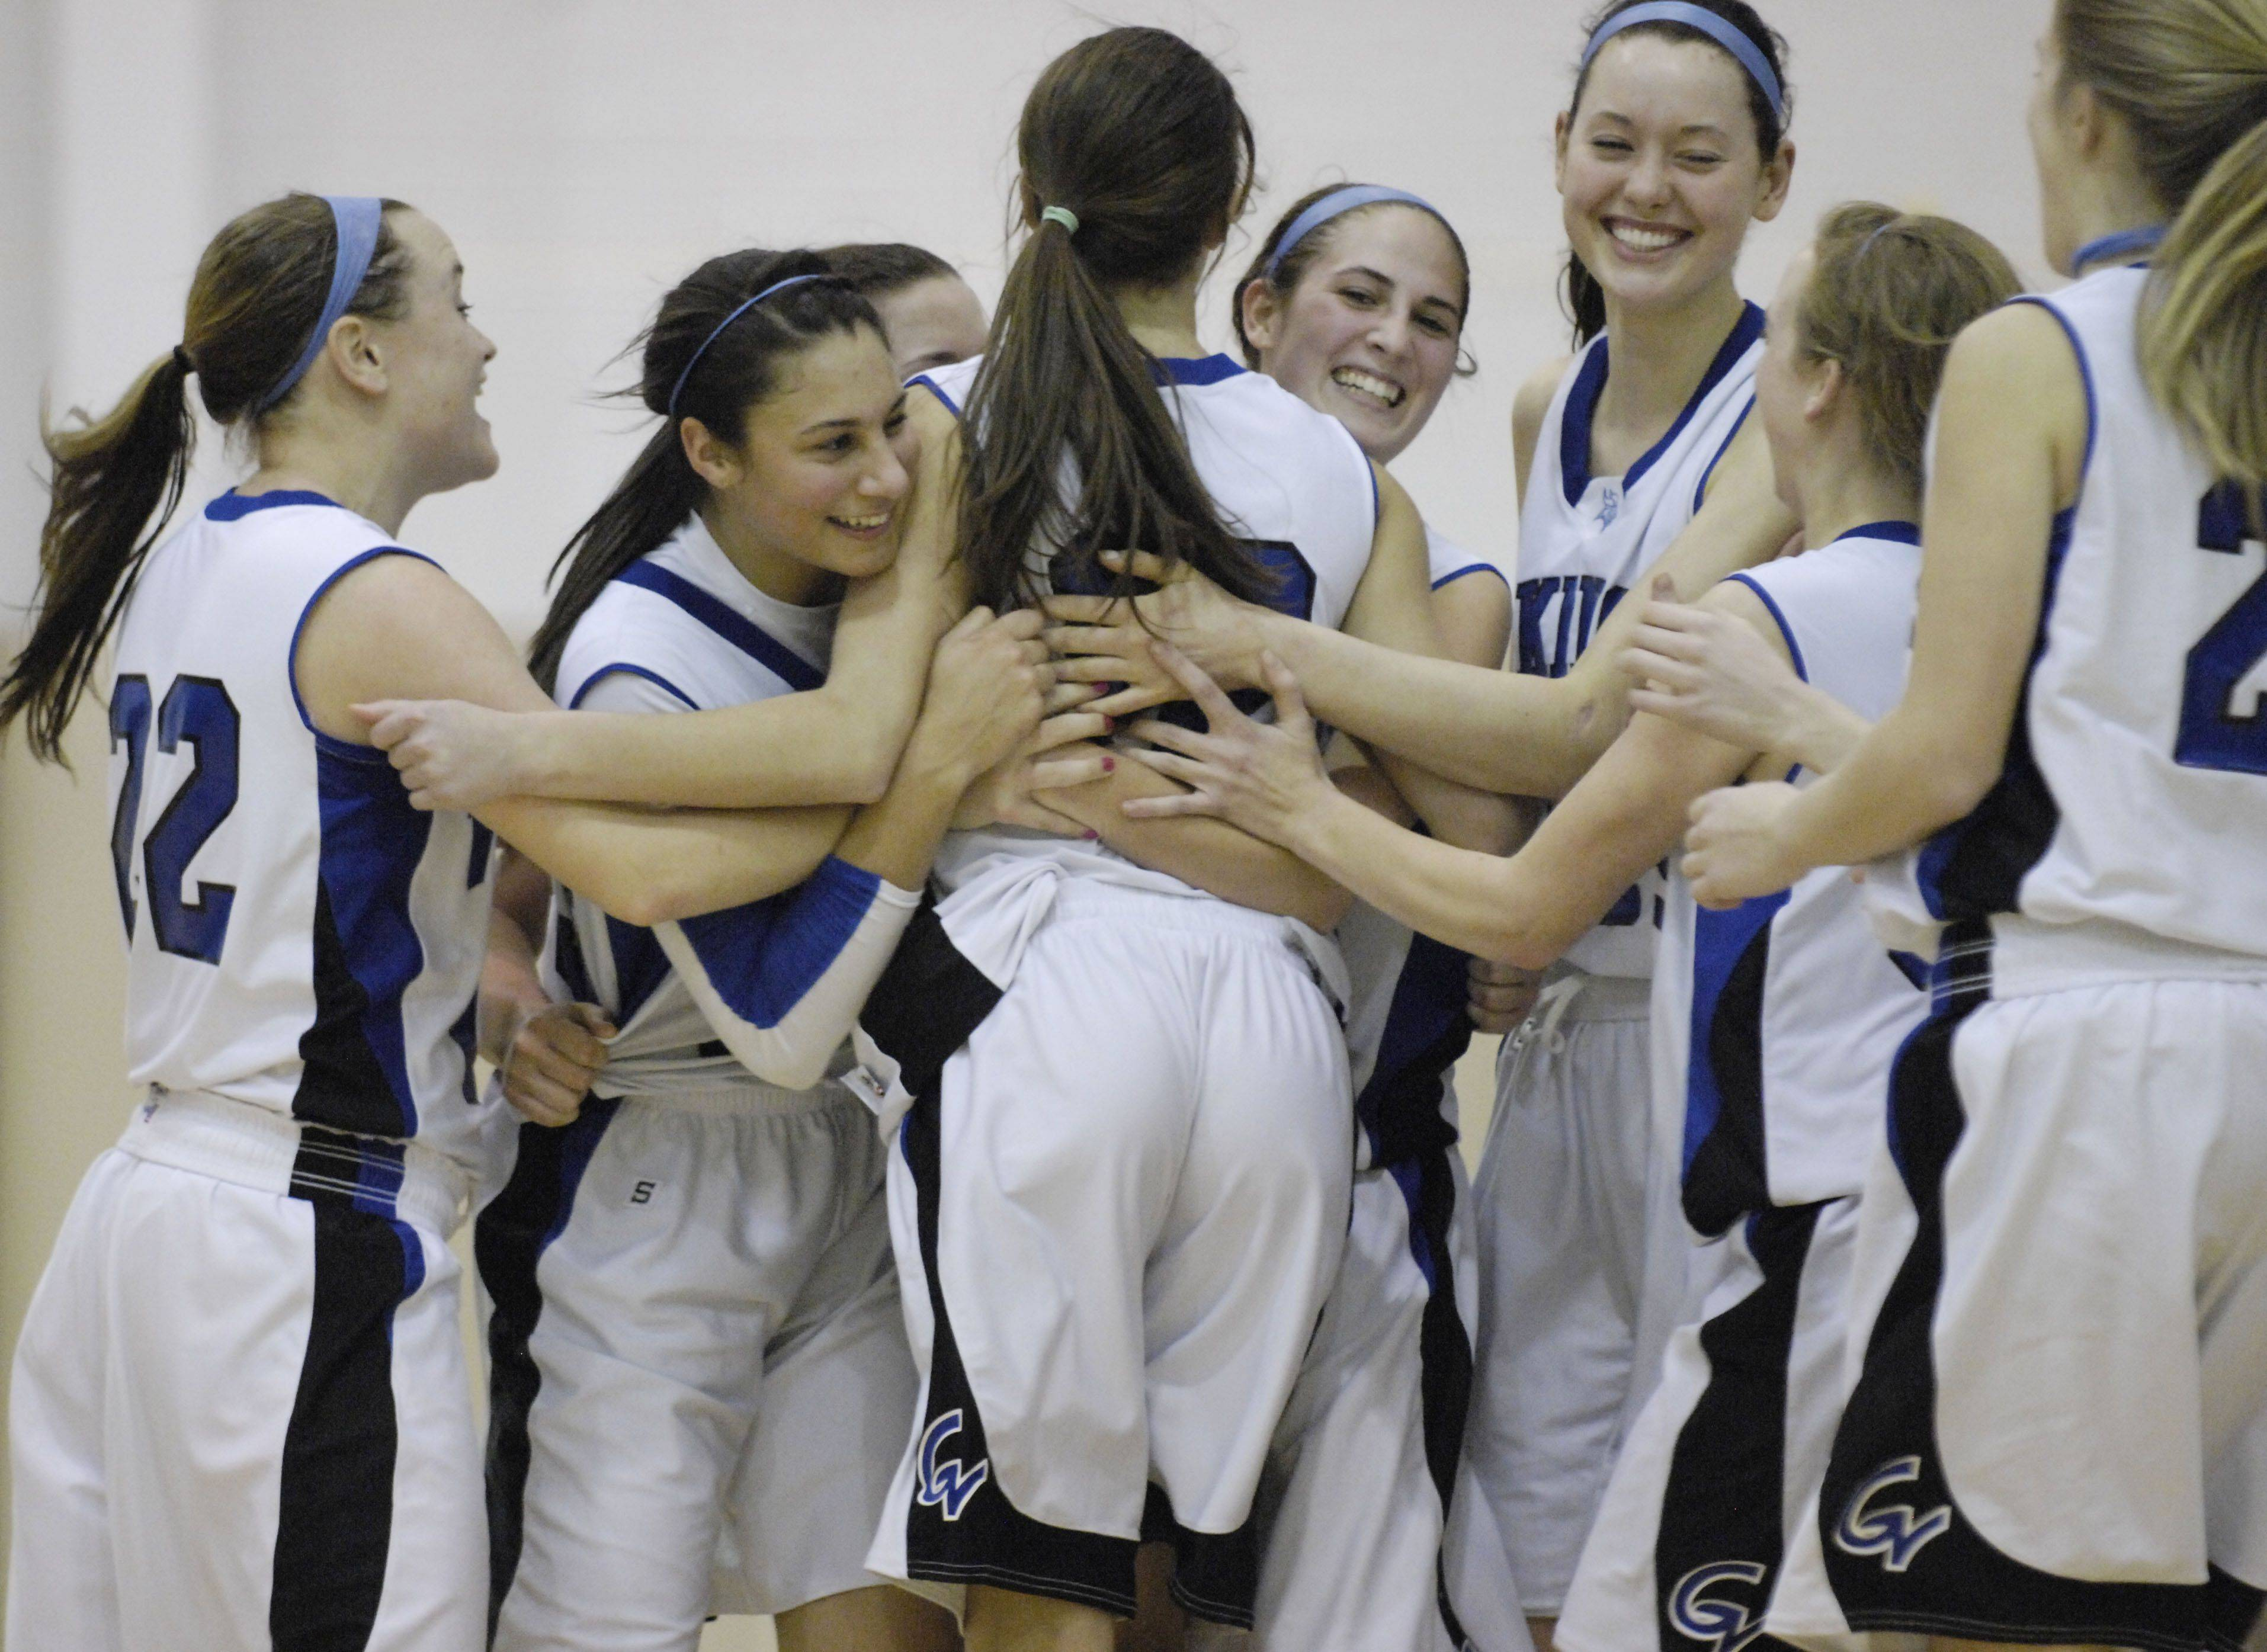 Geneva after beating Hononegah Tuesday in the sectional semi final game in Algonquin.